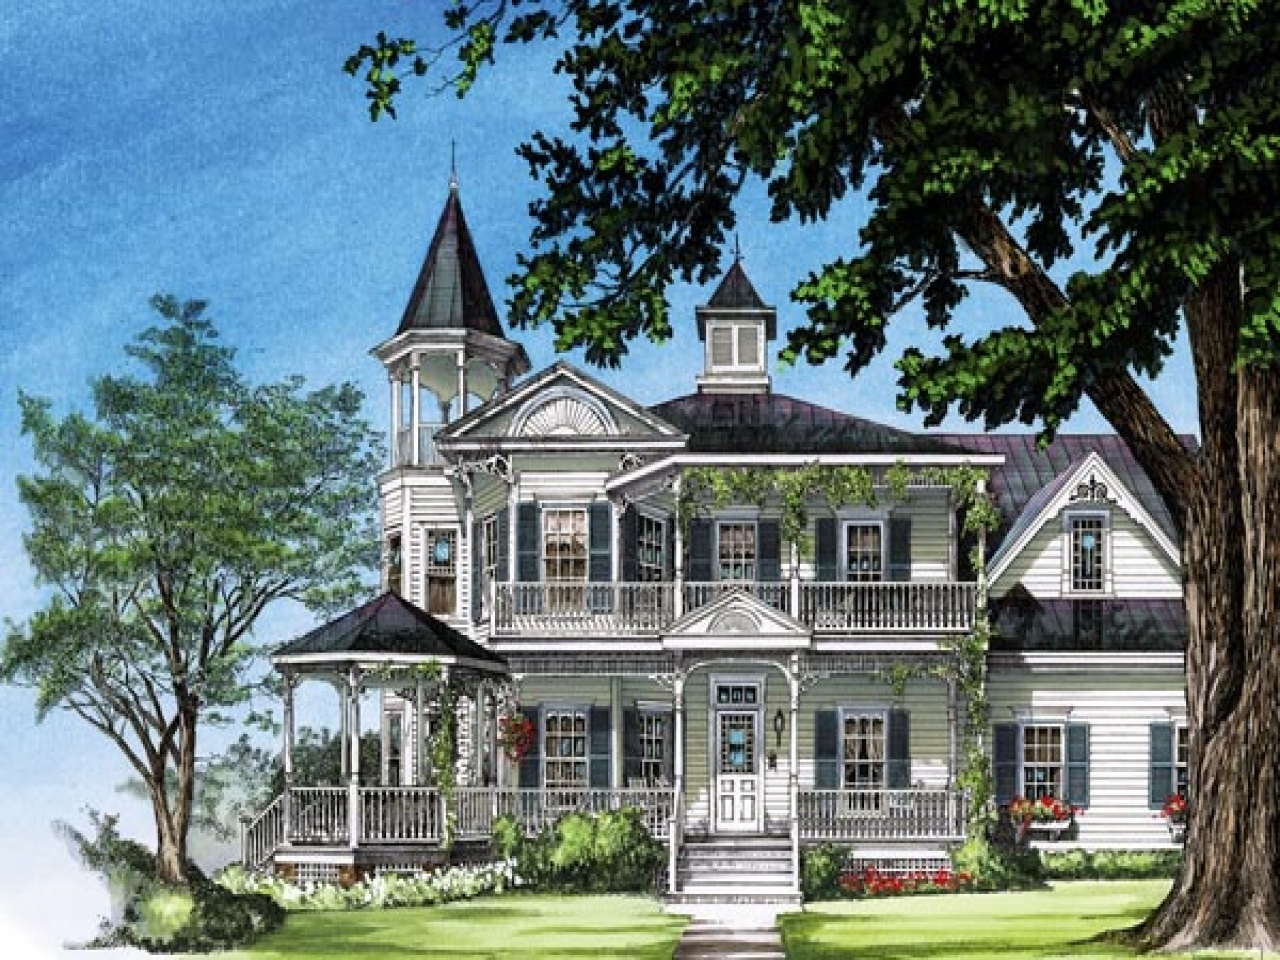 victorian house plans free southern victorian house plans old victorian house plans victorian blueprints treesranch com 7618